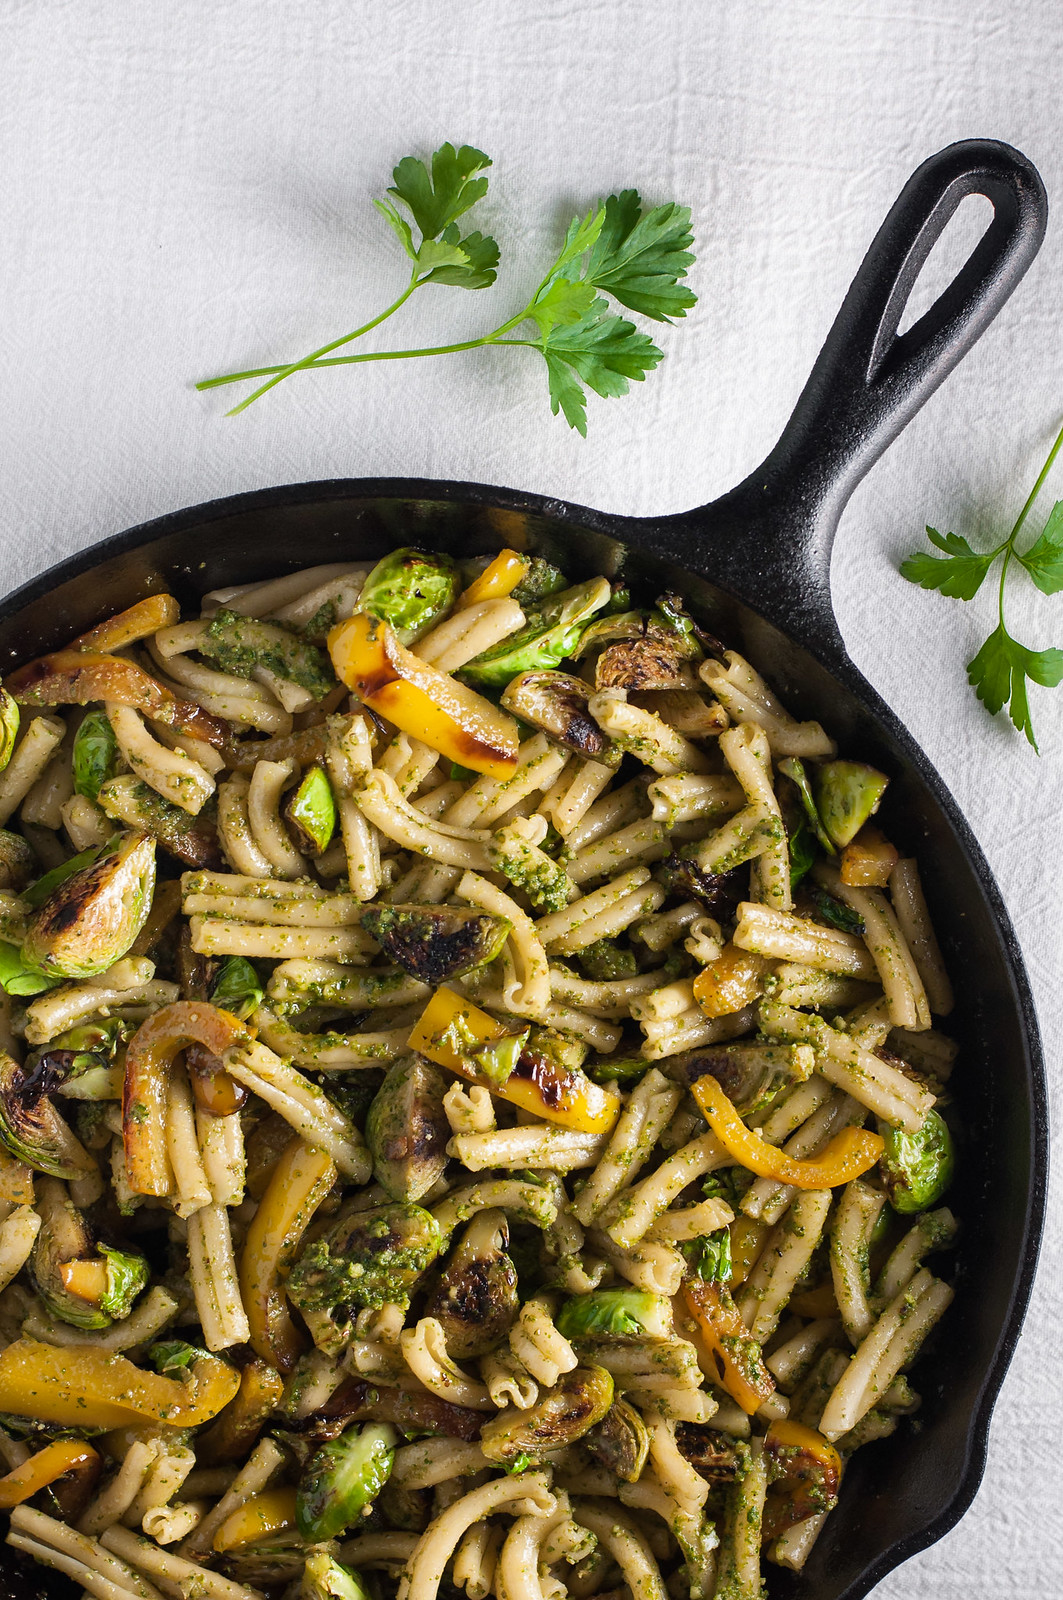 Winter walnut pesto pasta...comes together in 20 minutes for Valentine's dinner at home!